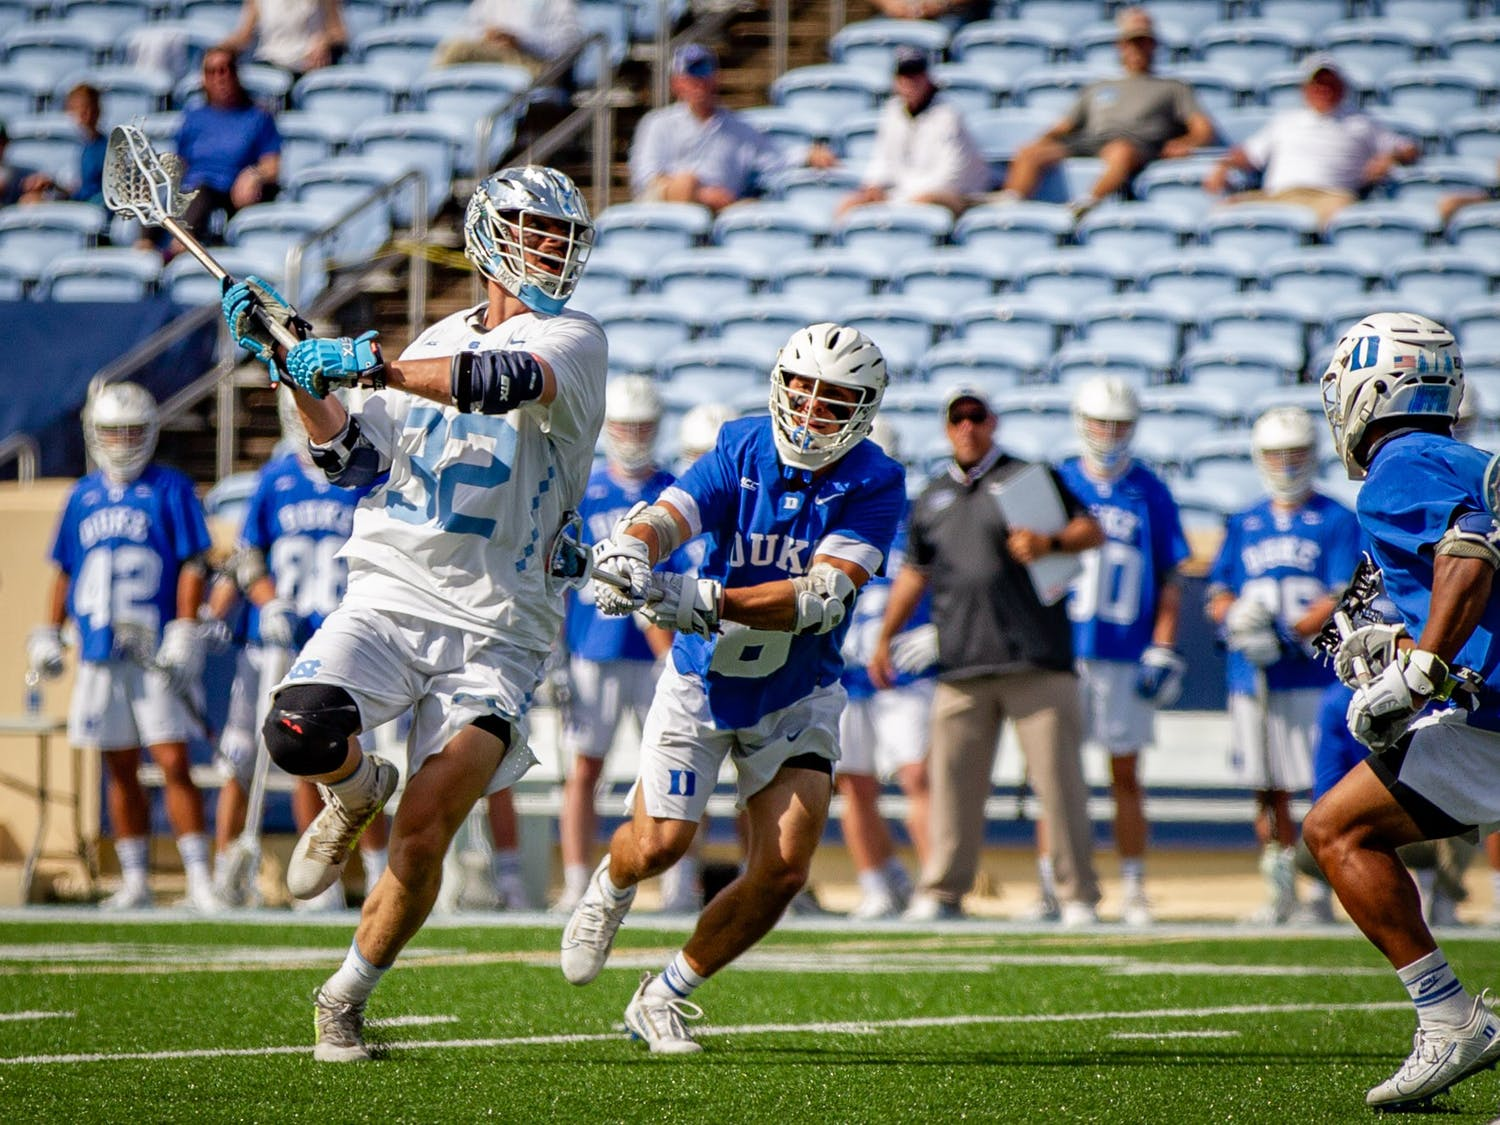 UNC graduate midfielder Connor McCarthy (32) takes a shot on the goal during the Tar Heels' 15-12 victory against Duke on Sunday, May 2. With the victory, UNC and Duke share the 2021 ACC regular season title.